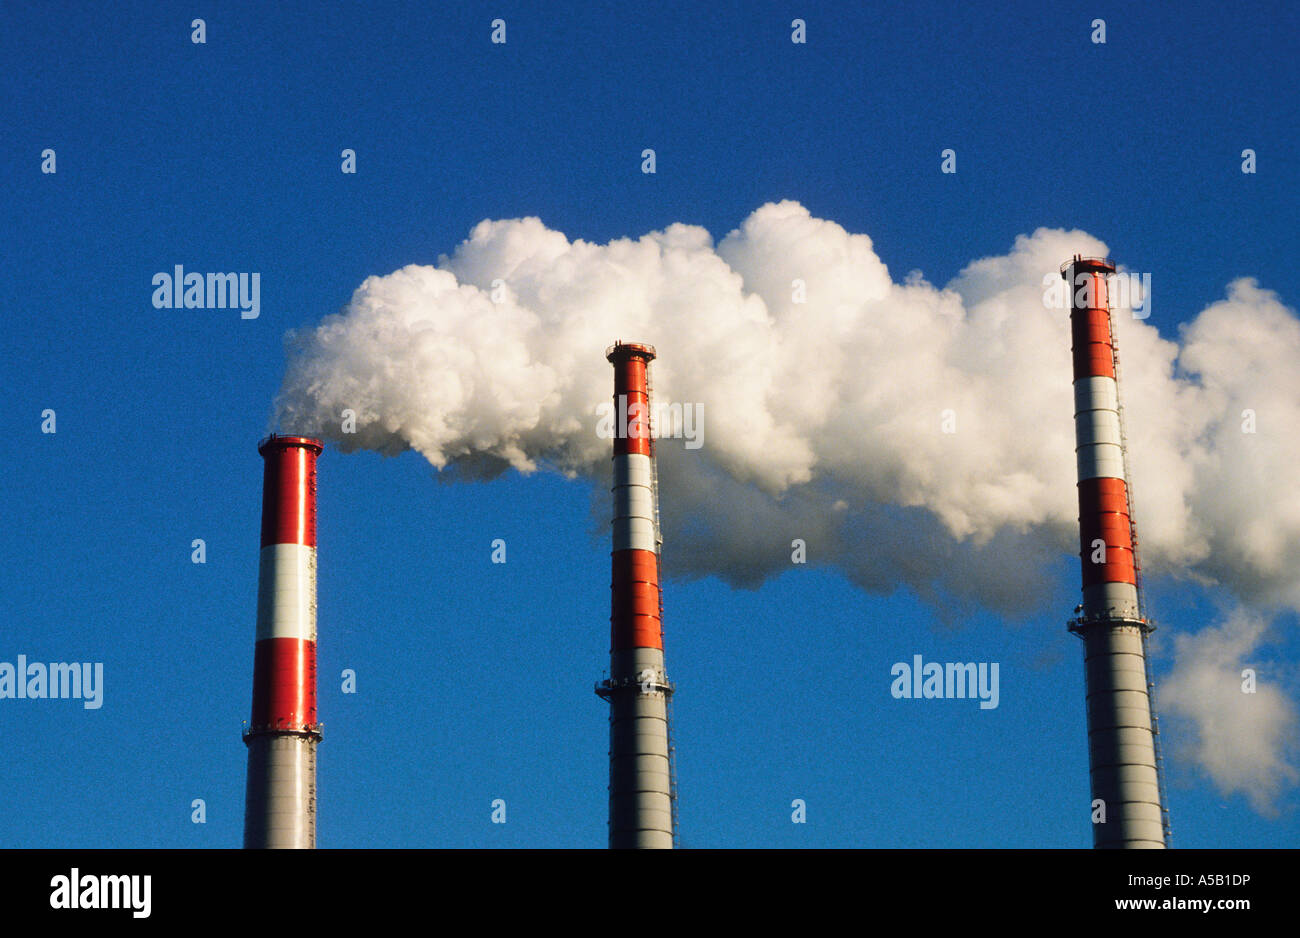 New York City NYC Three Smoke Stacks With Steam Coming Out - Stock Image